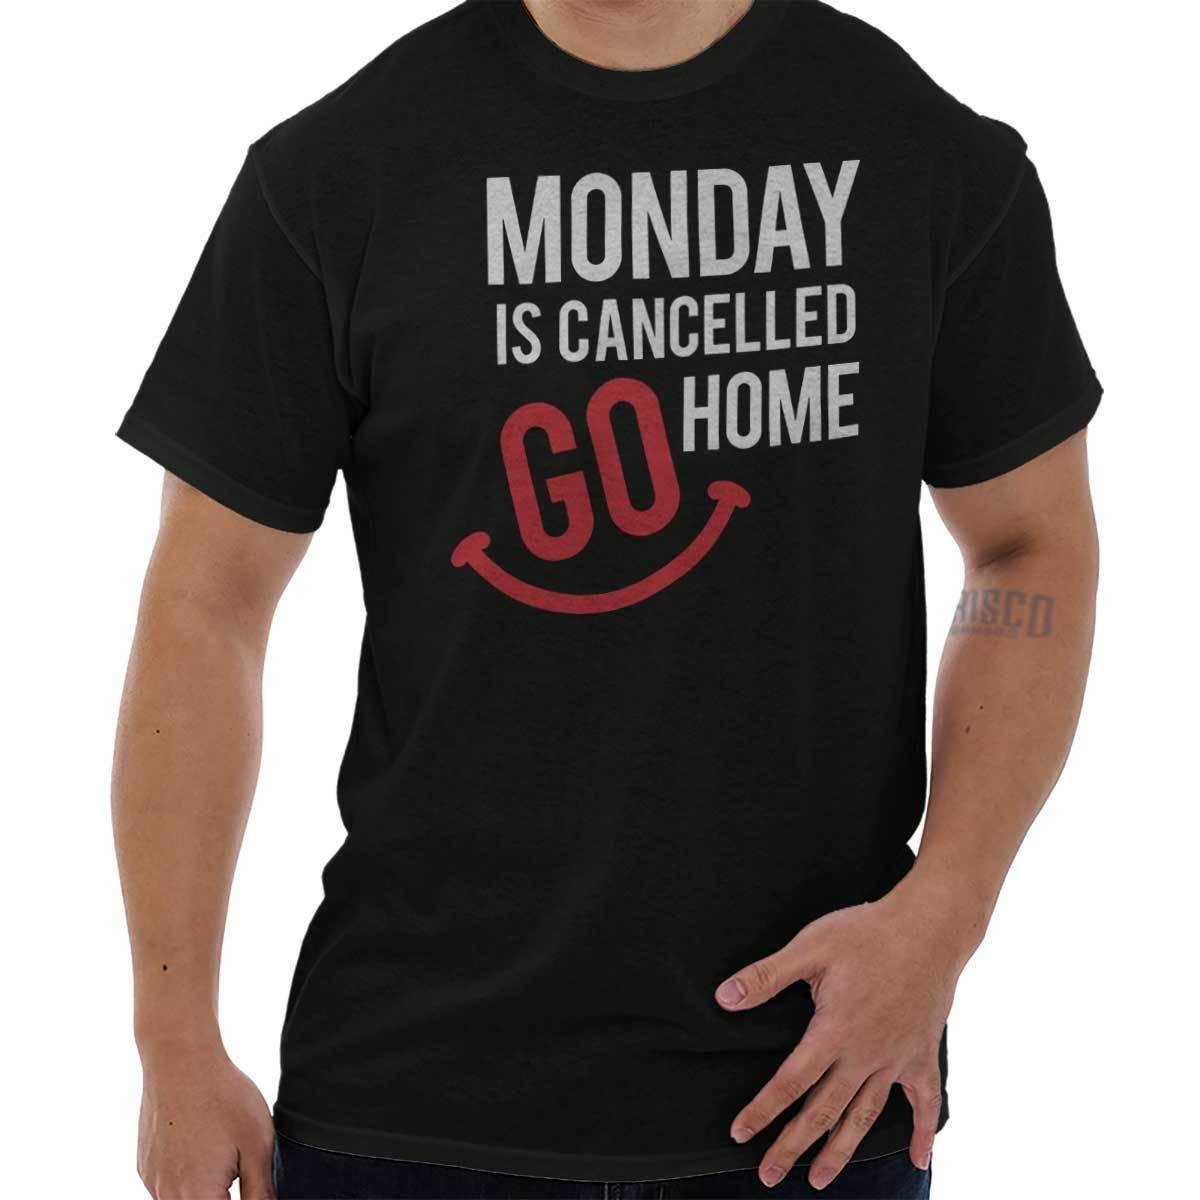 7b4d5b0e2d2 Monday Is Cancelled Go Home Funny Shirt